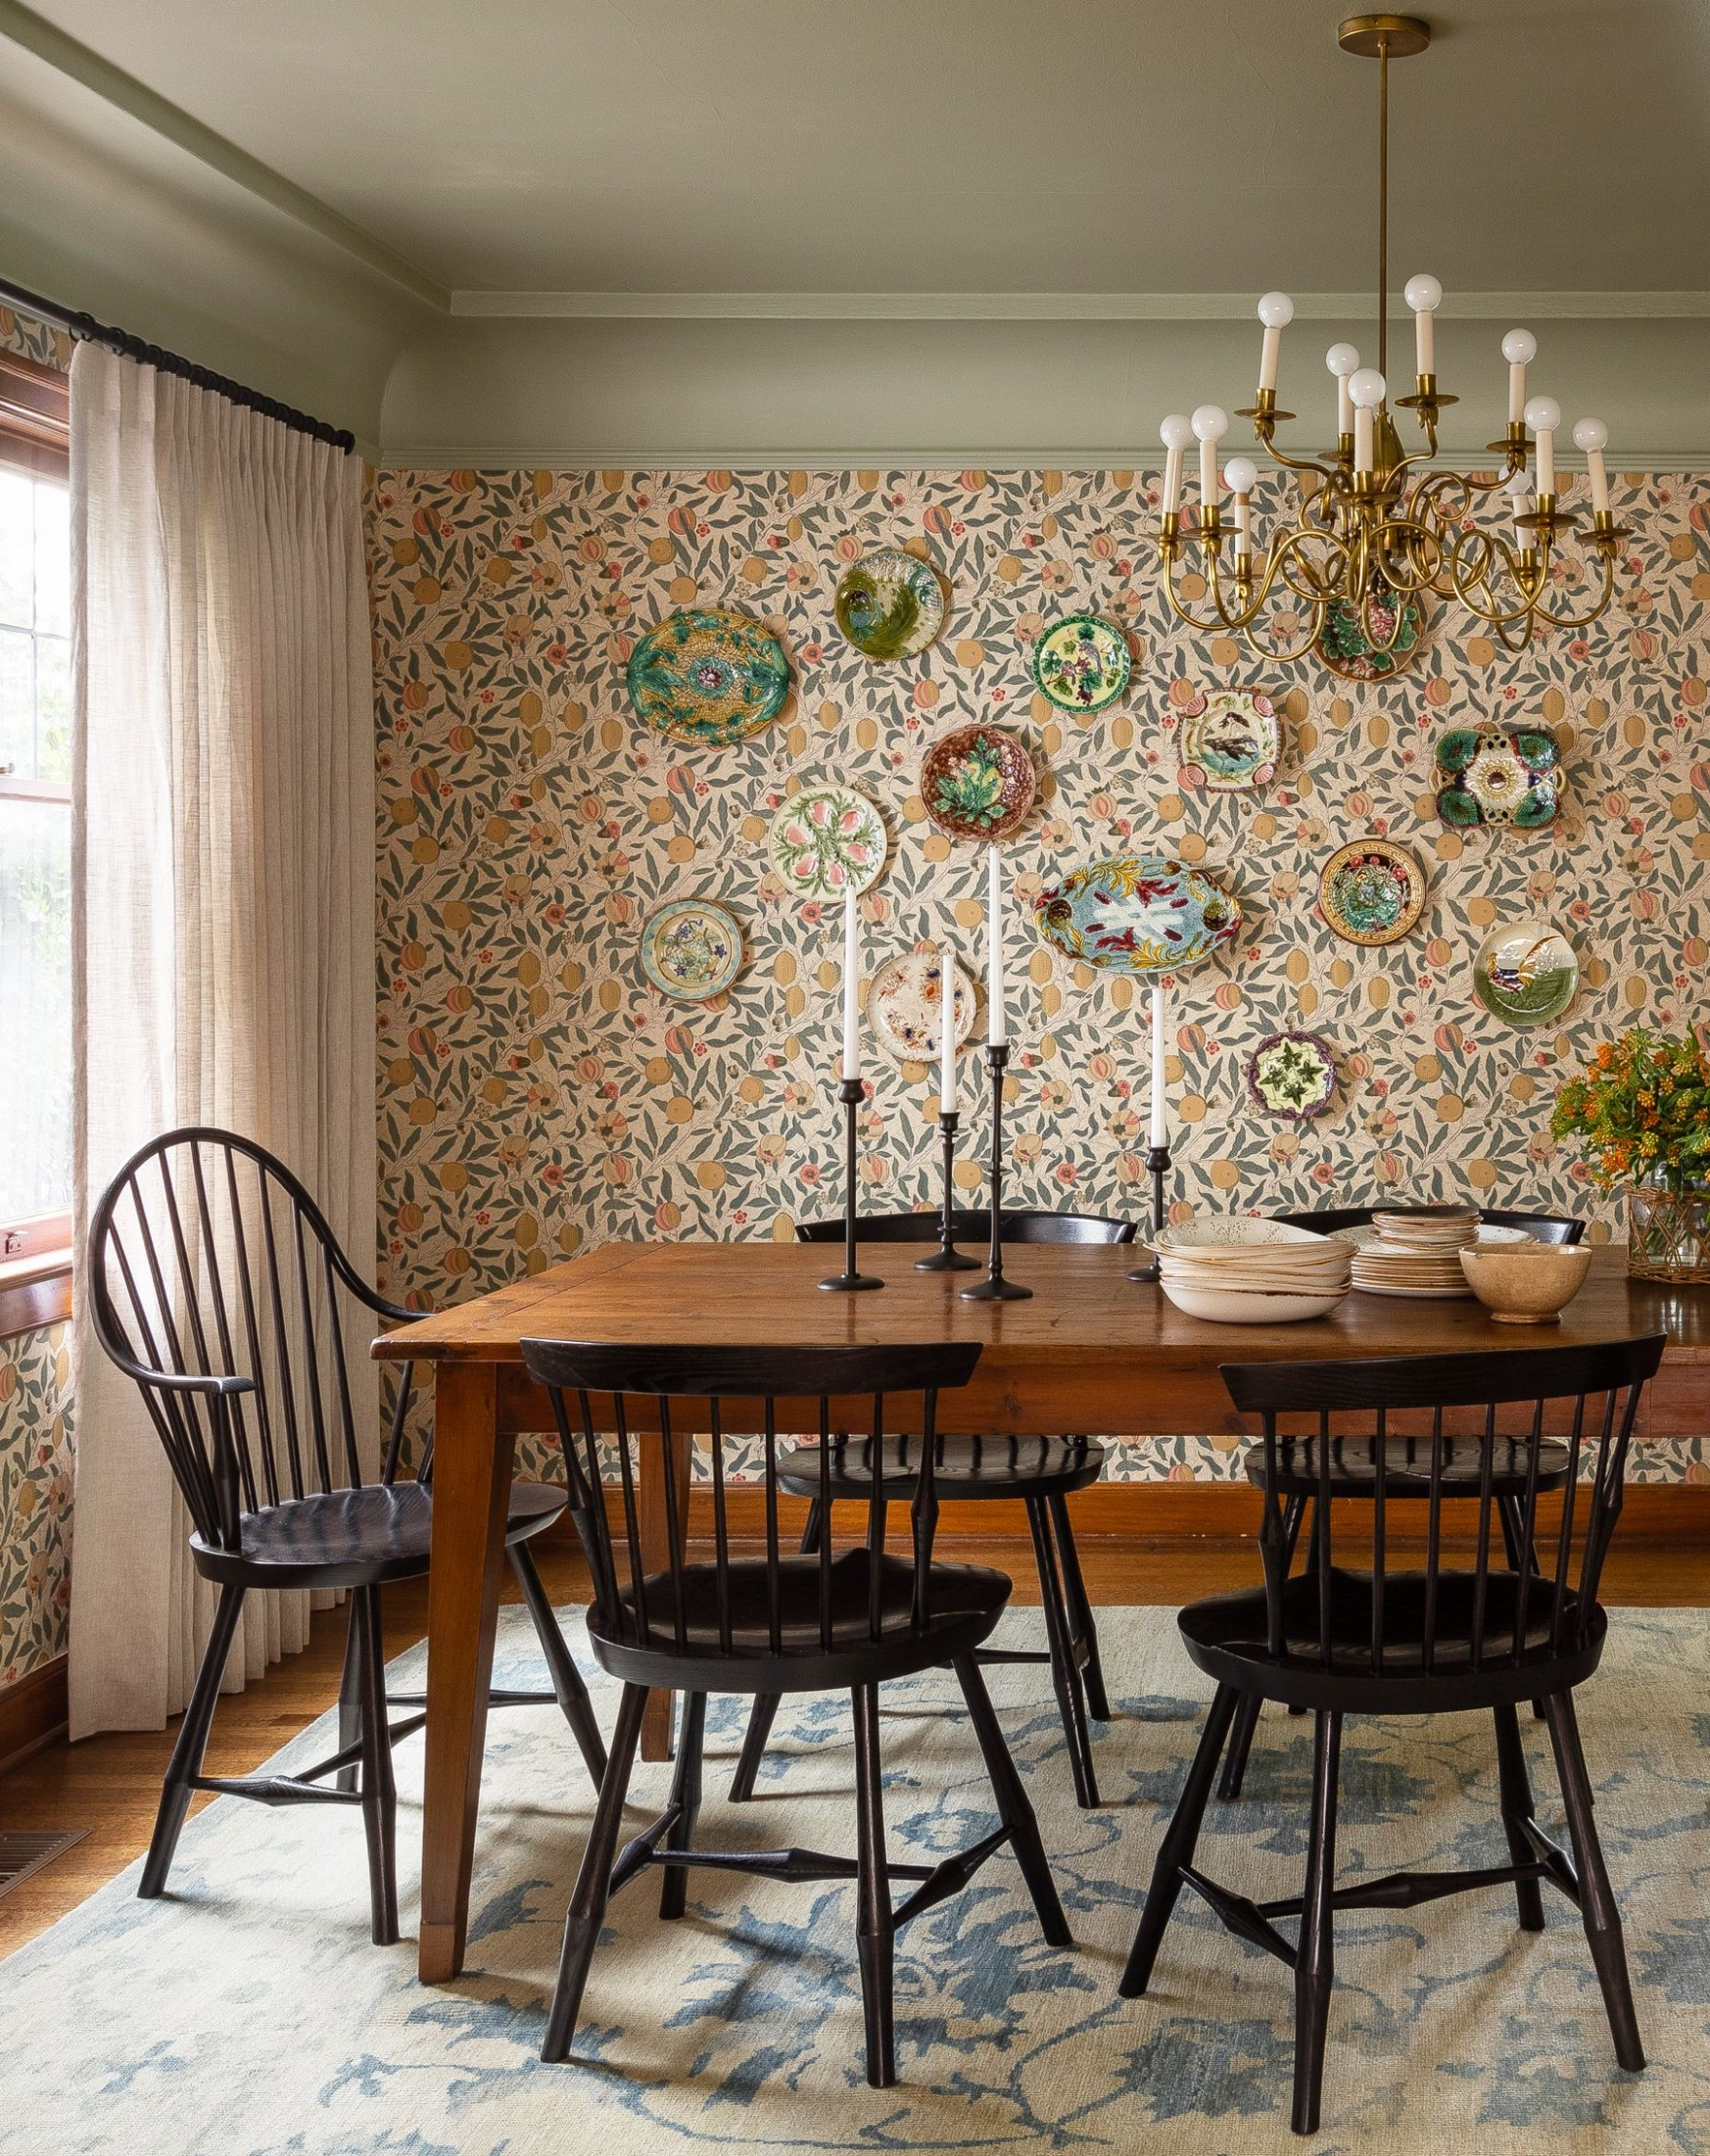 12 Best Dining Room Decorating Ideas, Furniture, Designs, and Pictures - Dining Room Theme Ideas